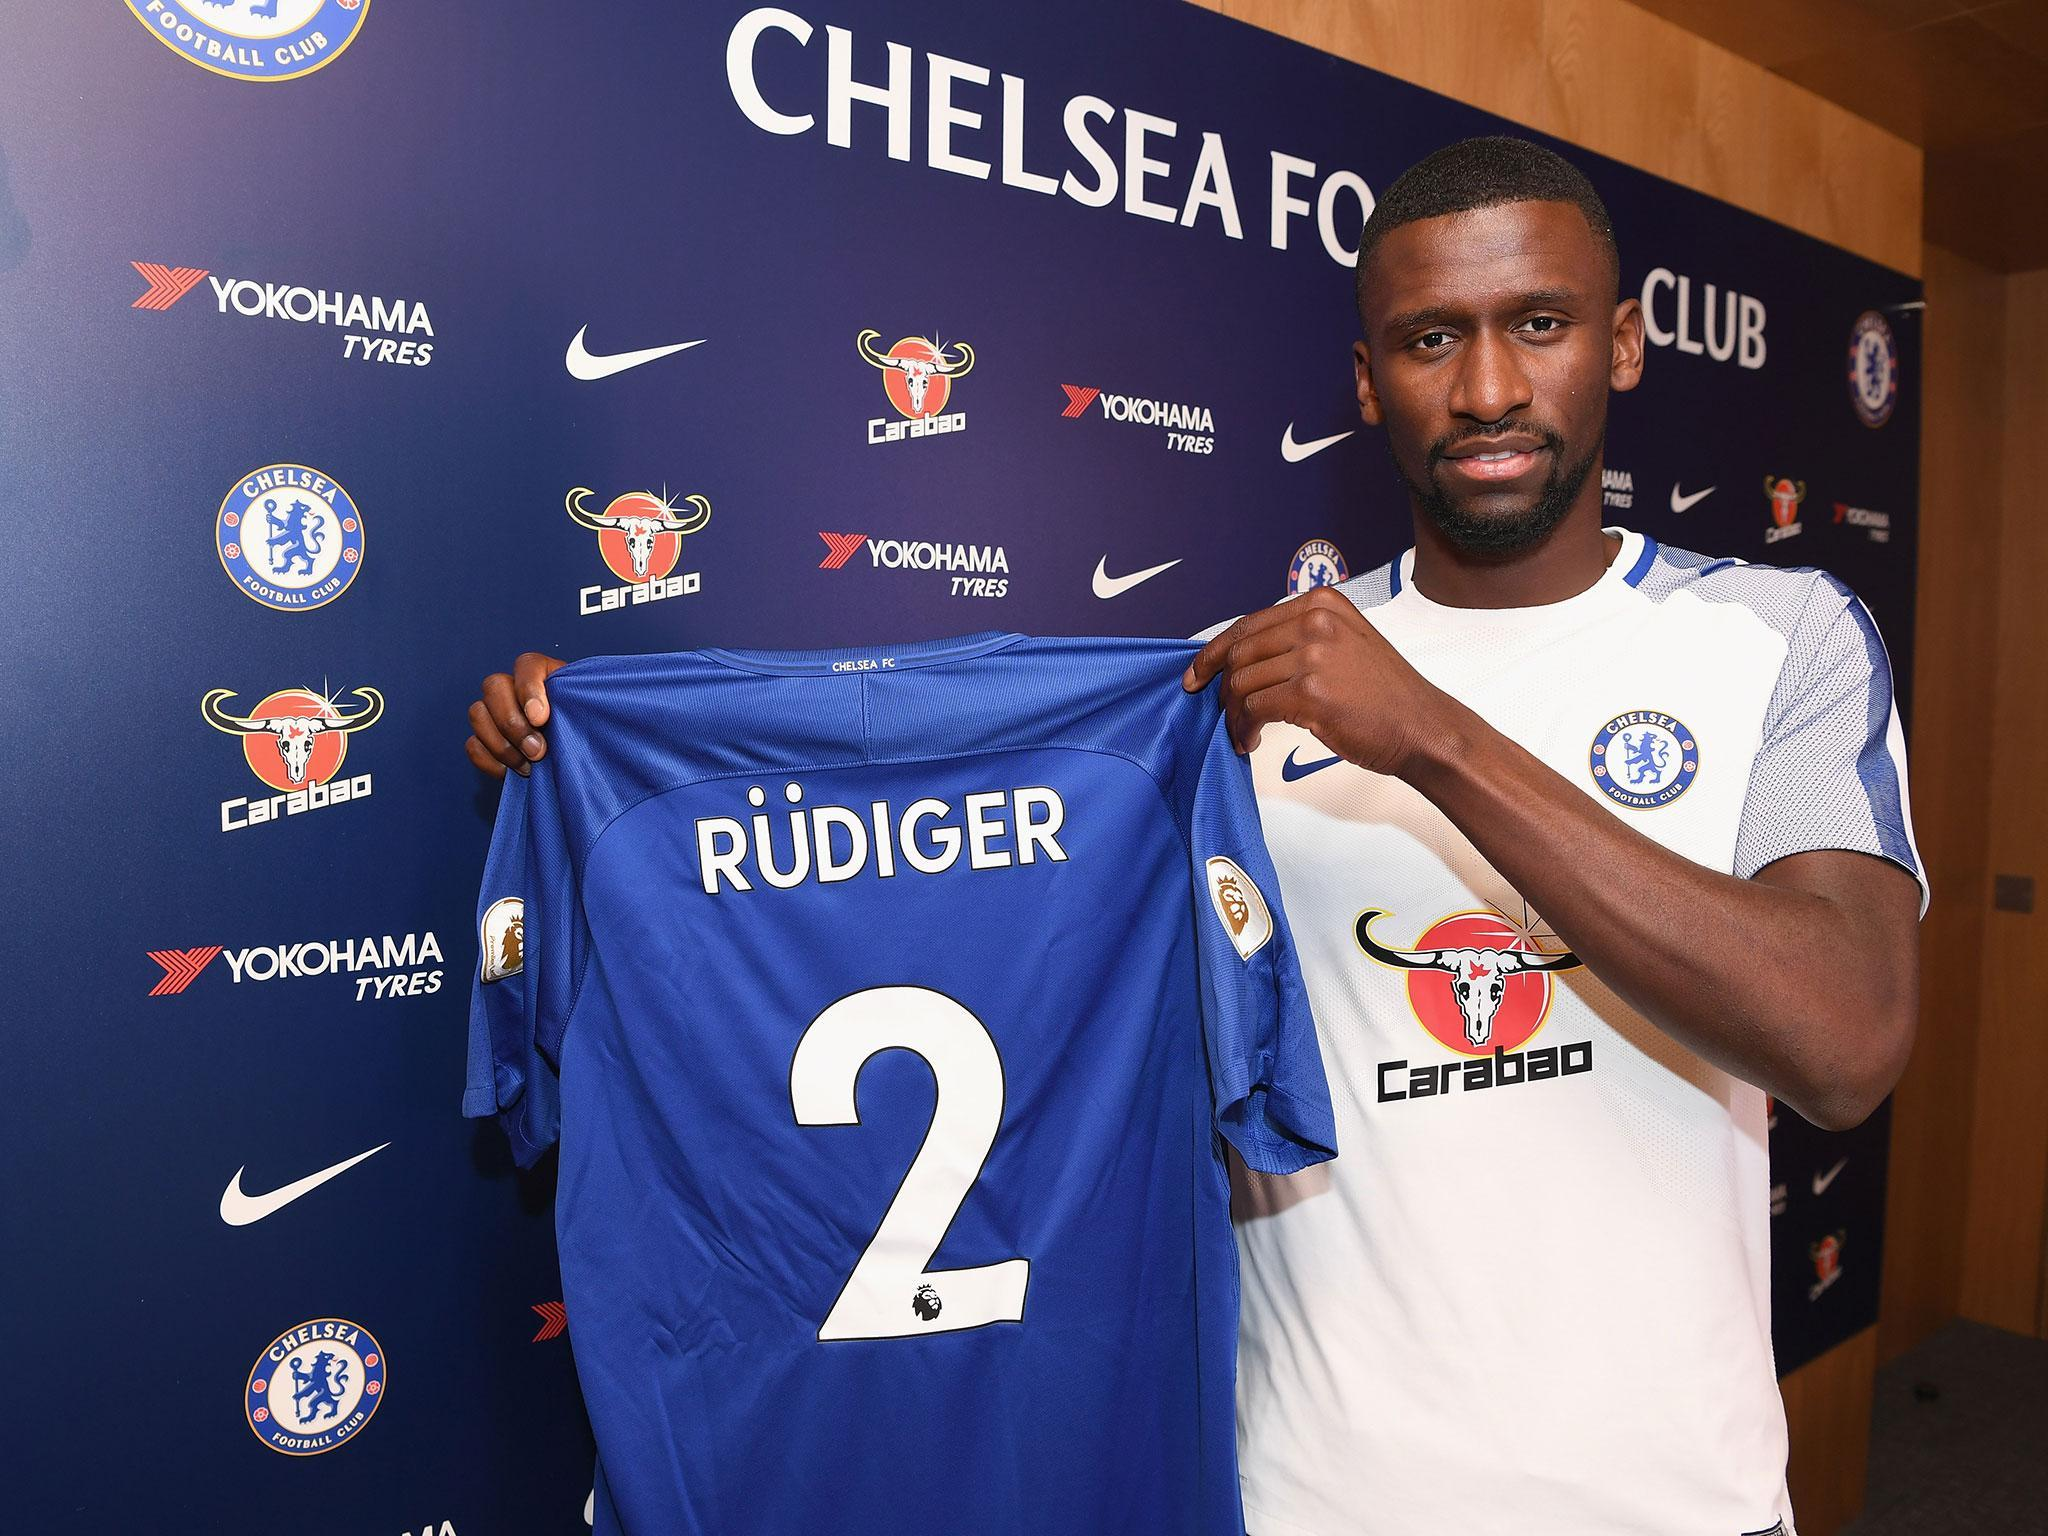 https://static.independent.co.uk/s3fs-public/thumbnails/image/2017/07/09/16/antonio-rudiger-chelsea.jpg